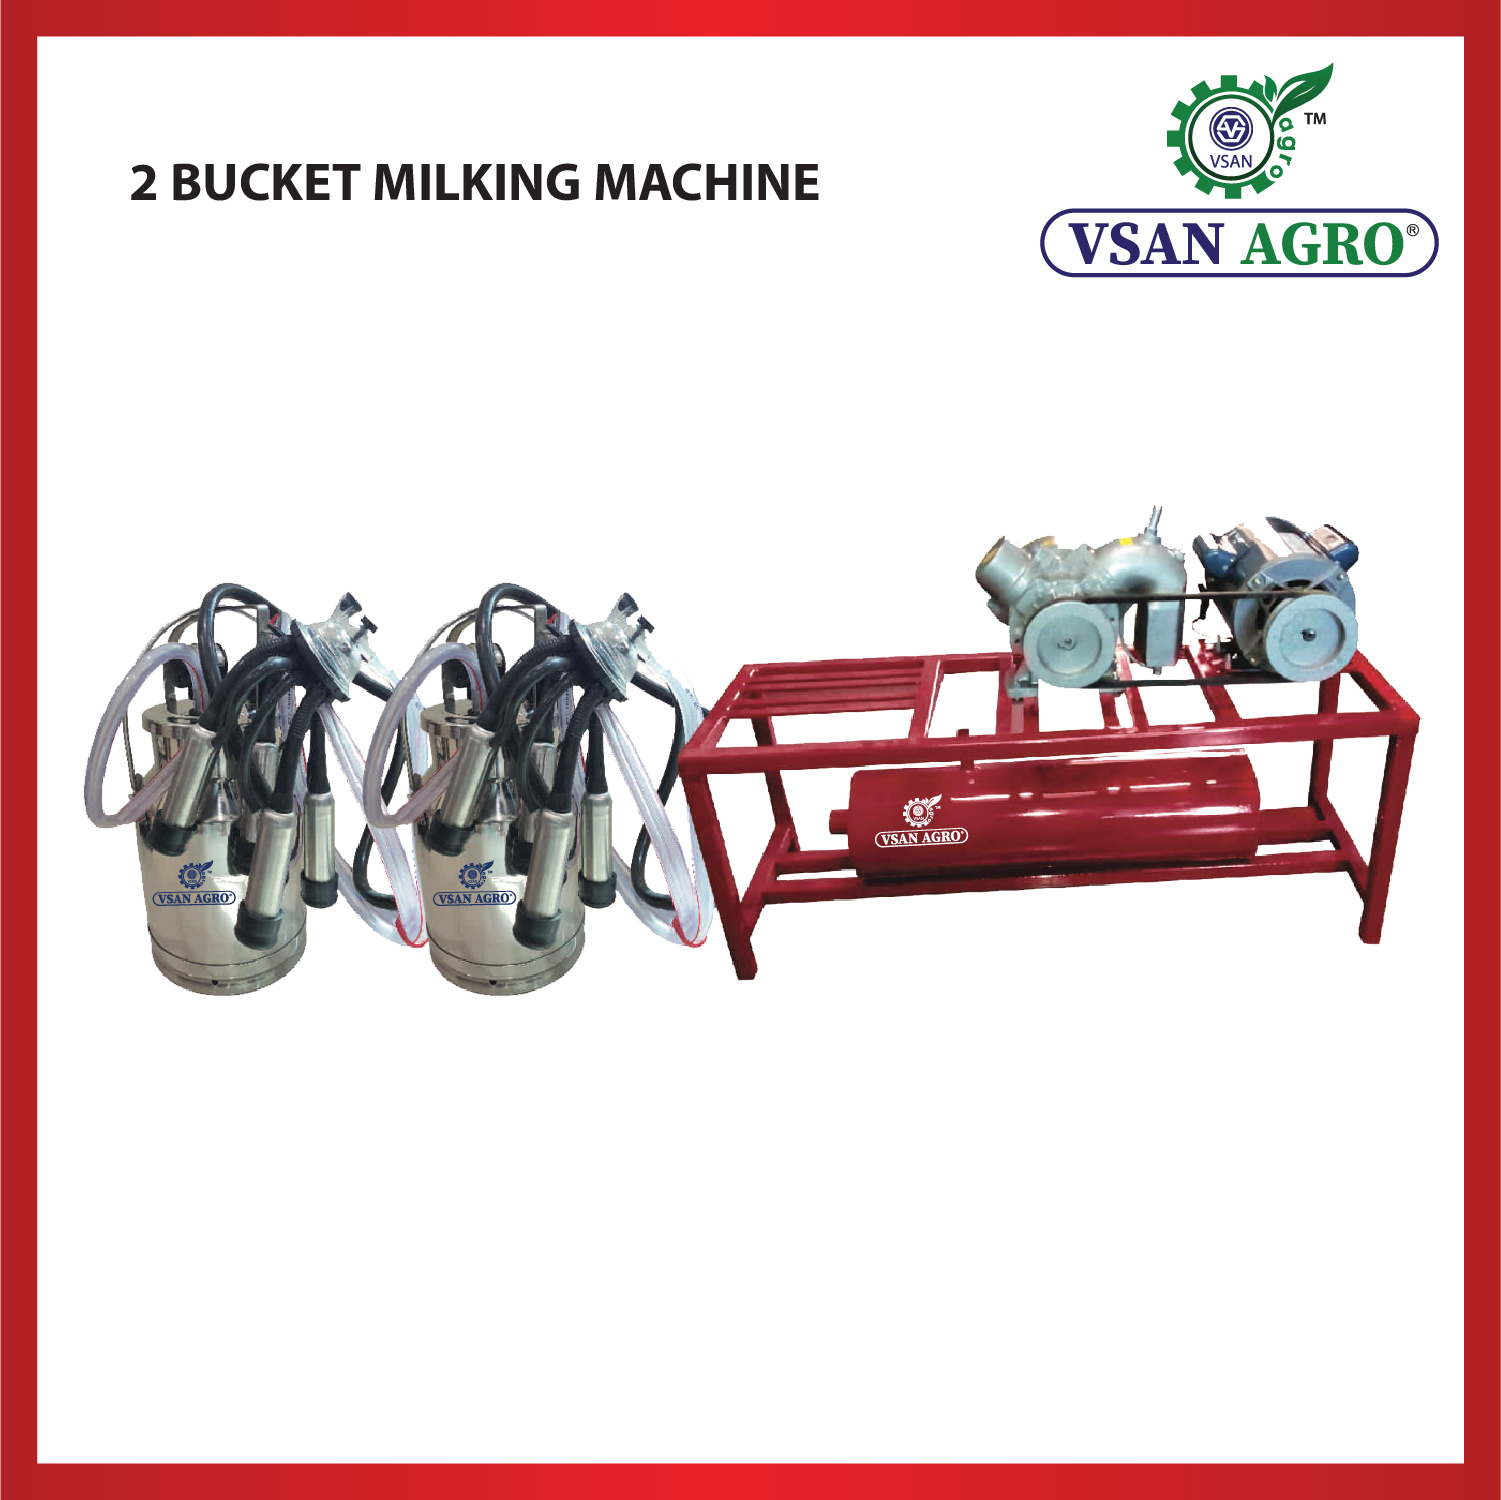 VSAN 2 Bucket Milking Machine